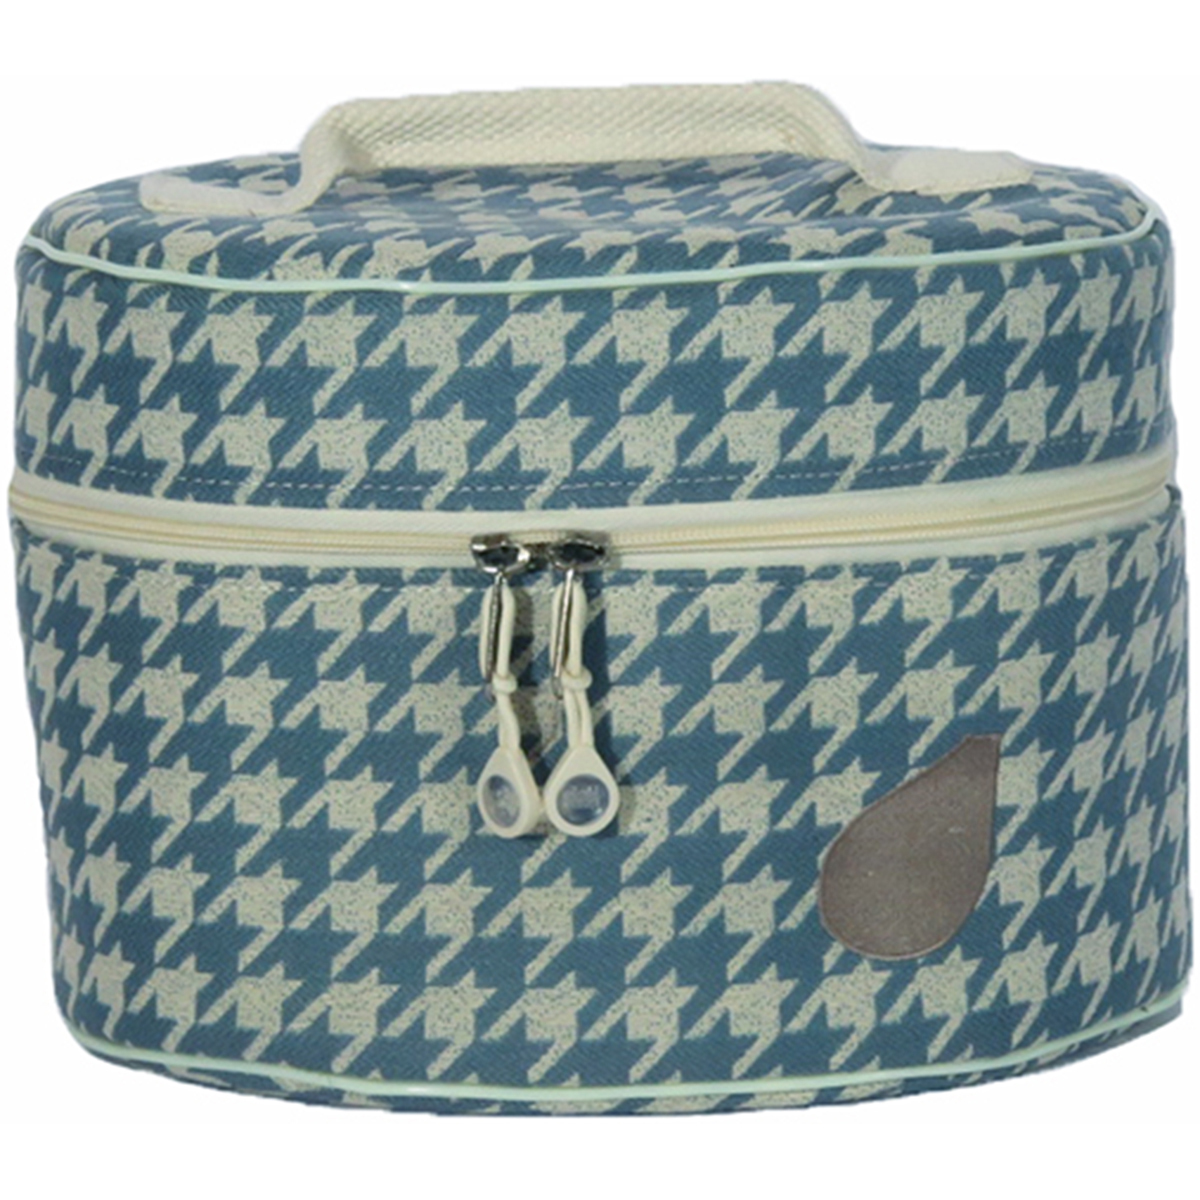 Bluefig Pearl District Mini-Carry Case-Sabrina - Blue Houndstooth